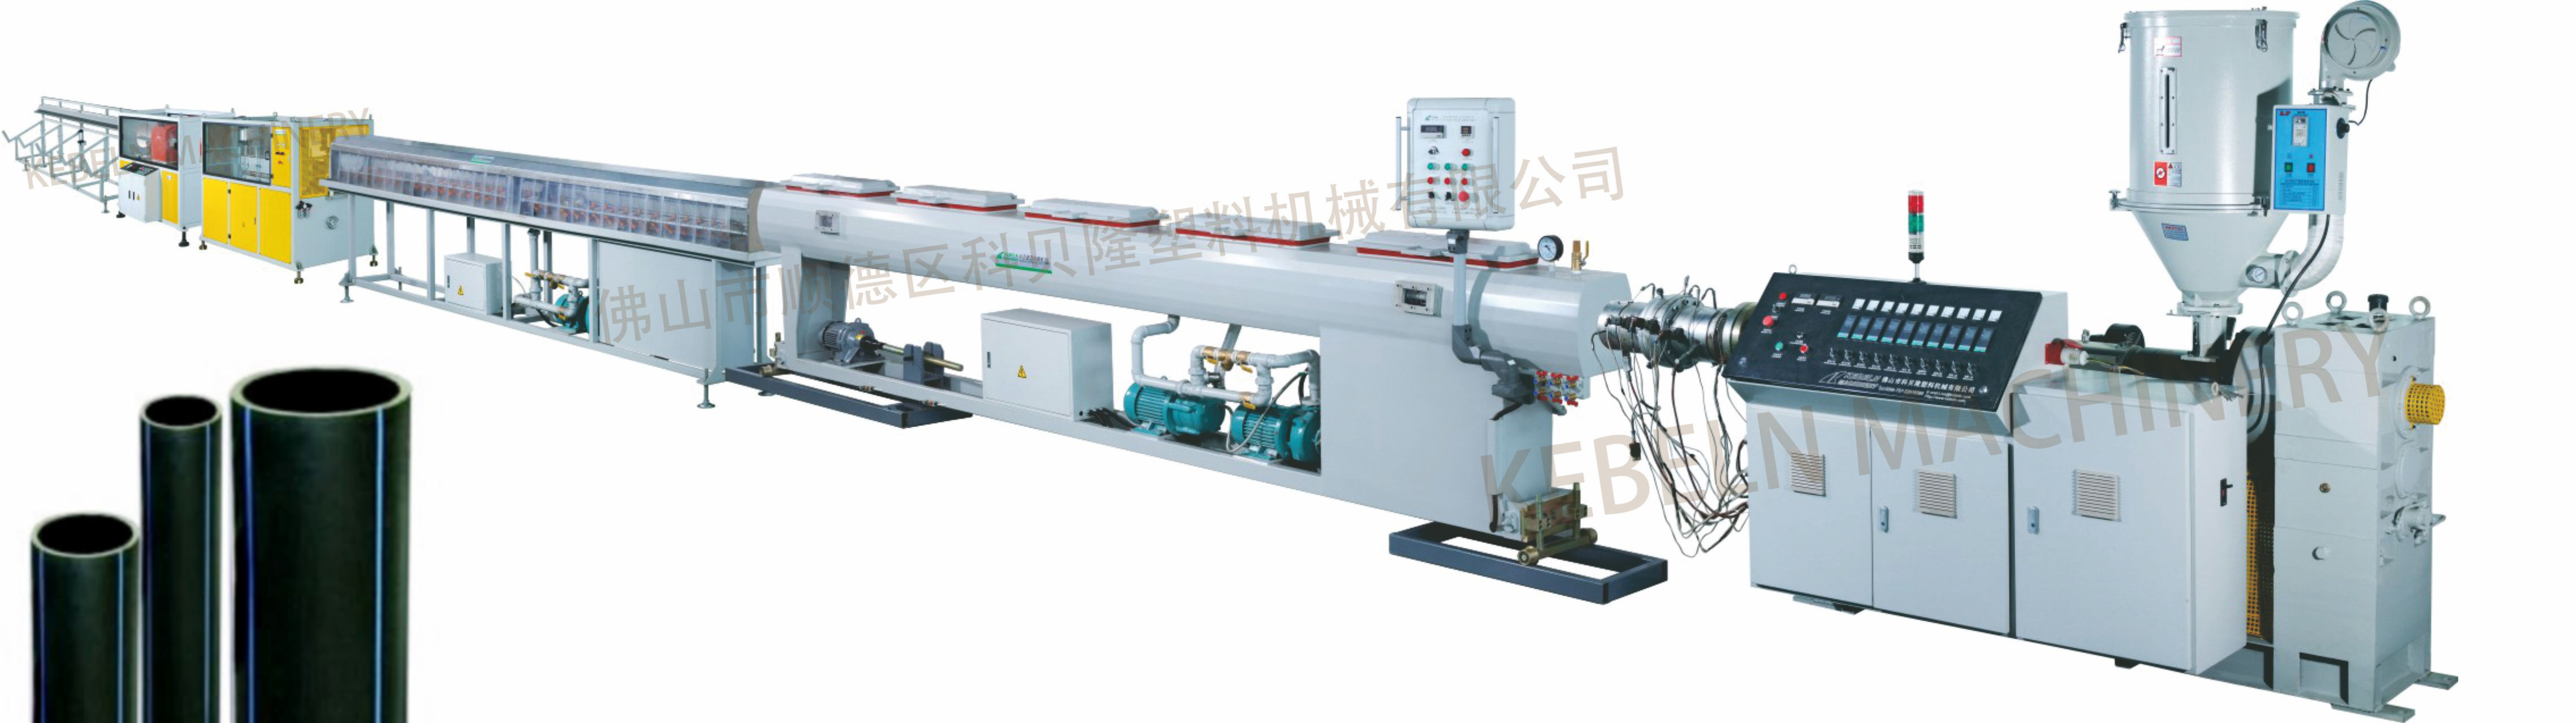 PE/PPR pipe extrusion line